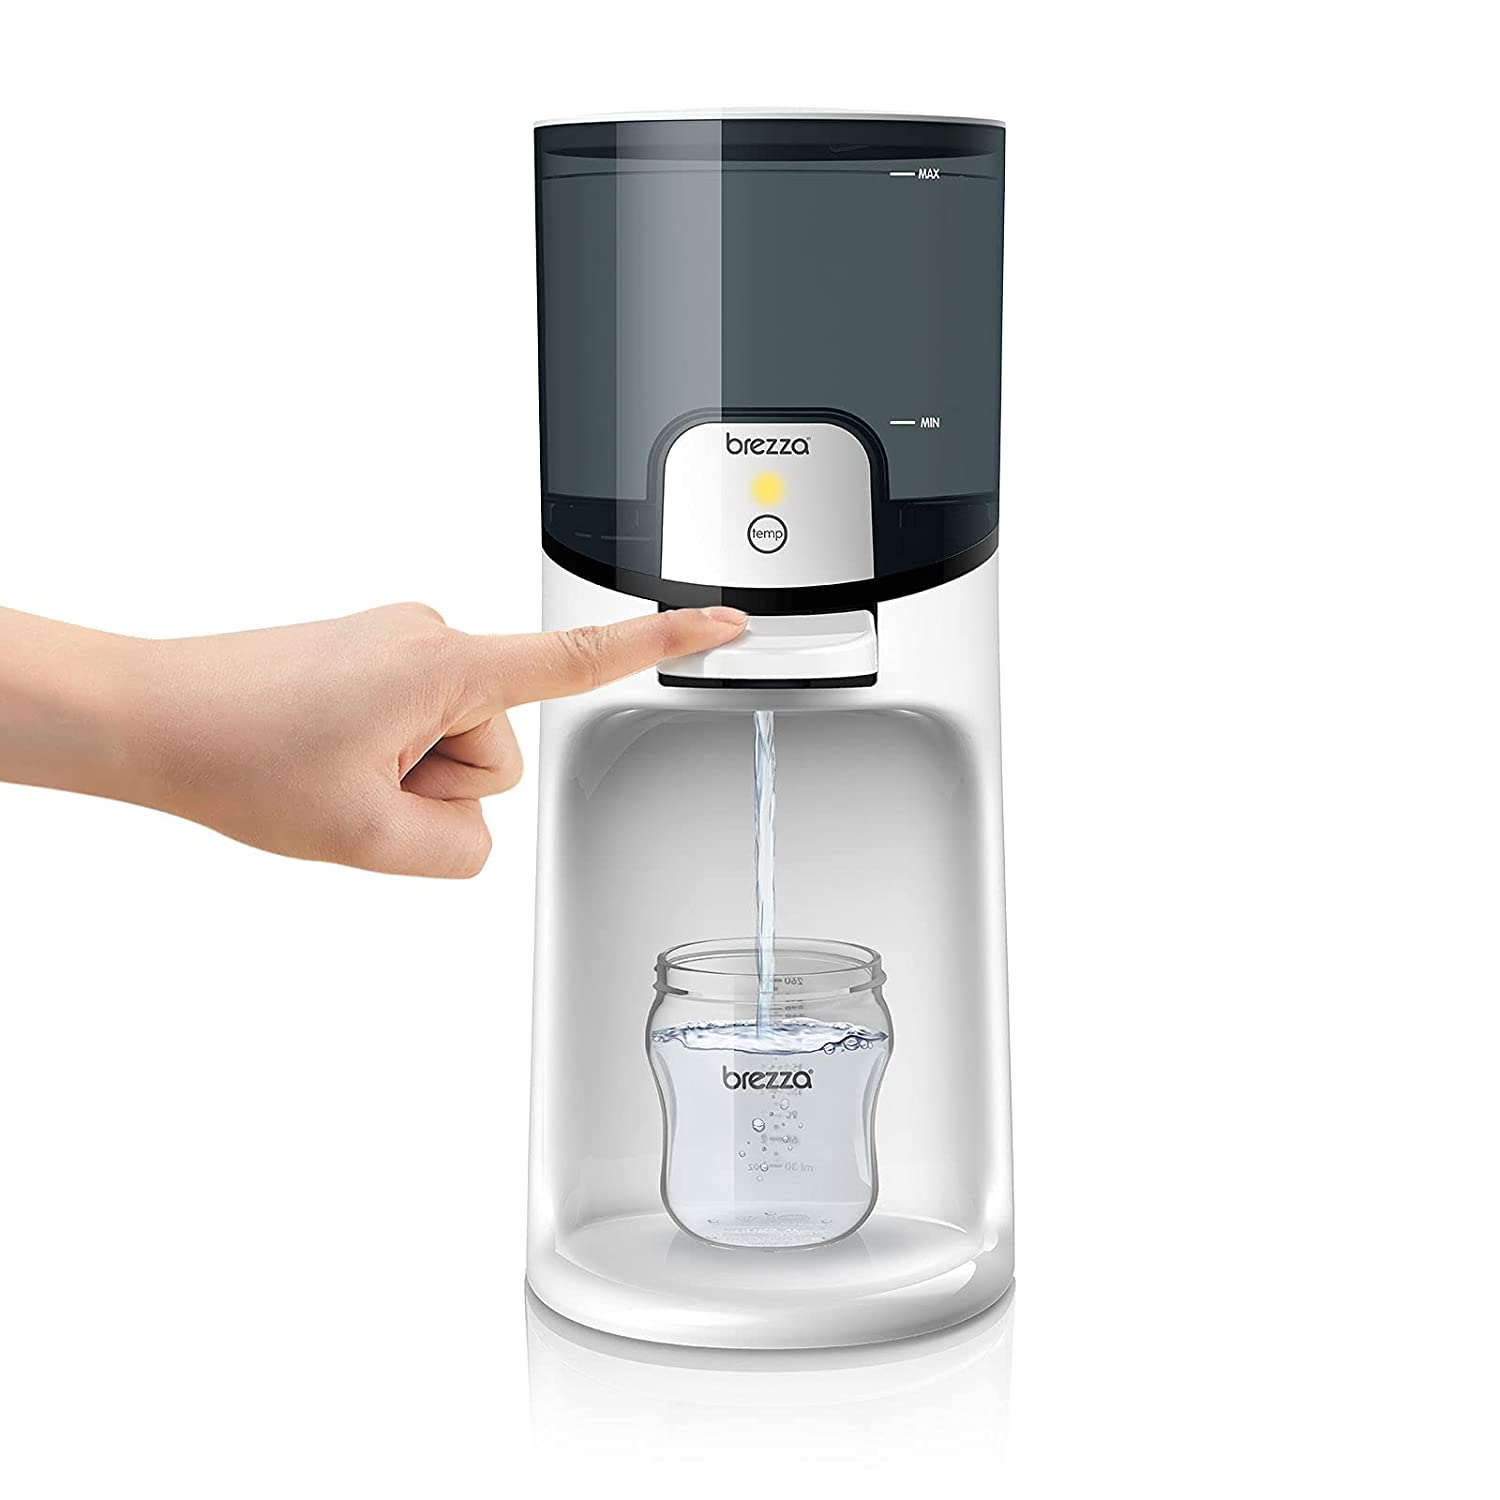 Baby Brezza Instant Baby Bottle Warmer – Make Warm Formula Bottle Instantly. Dispenses Warm Water 24/7. 3 Temperatures; No More Waiting with a Traditional Bottle Warmer